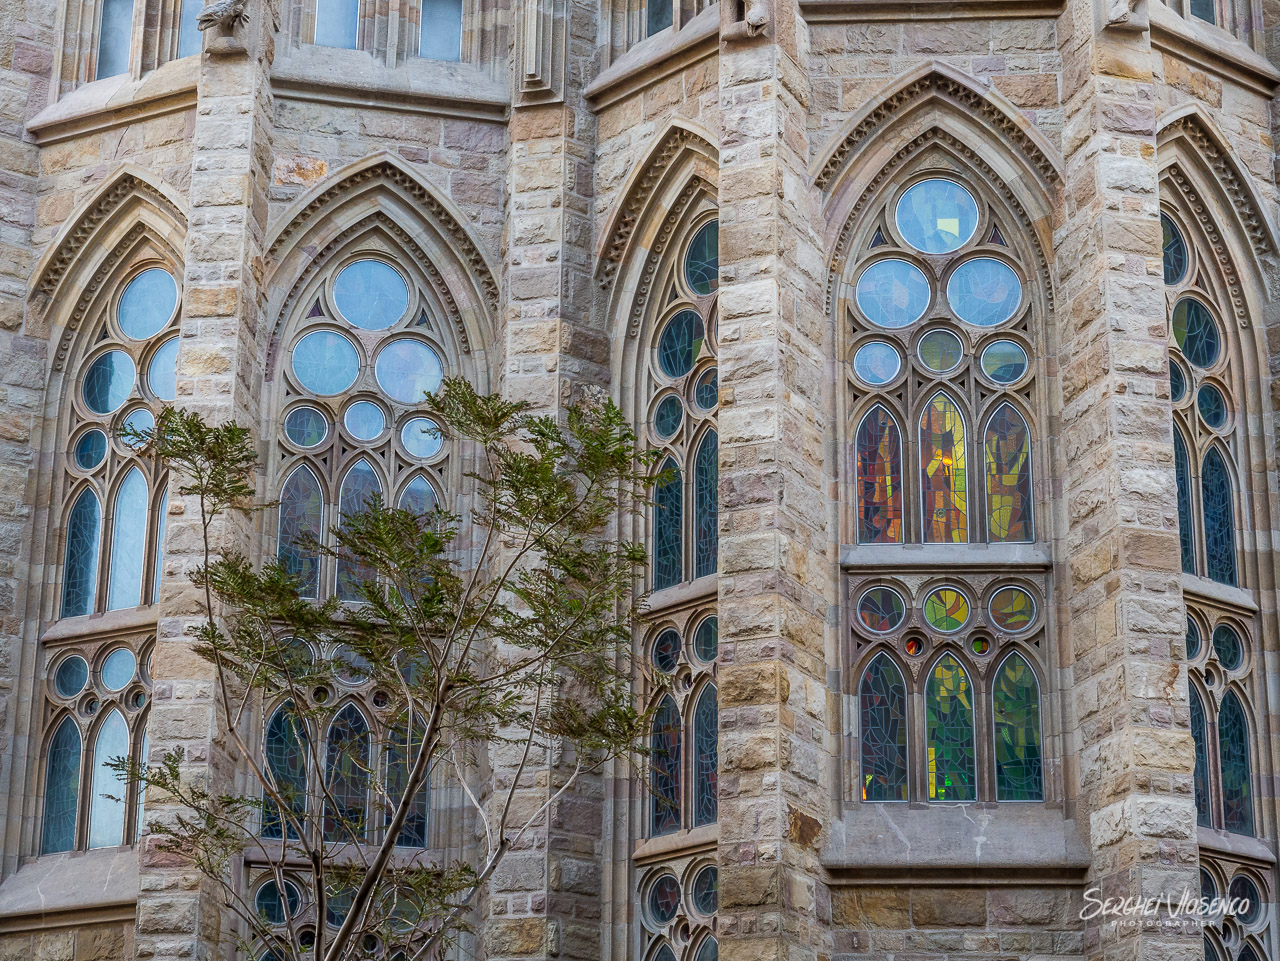 Colorful mosaic glass windows in the cathedral